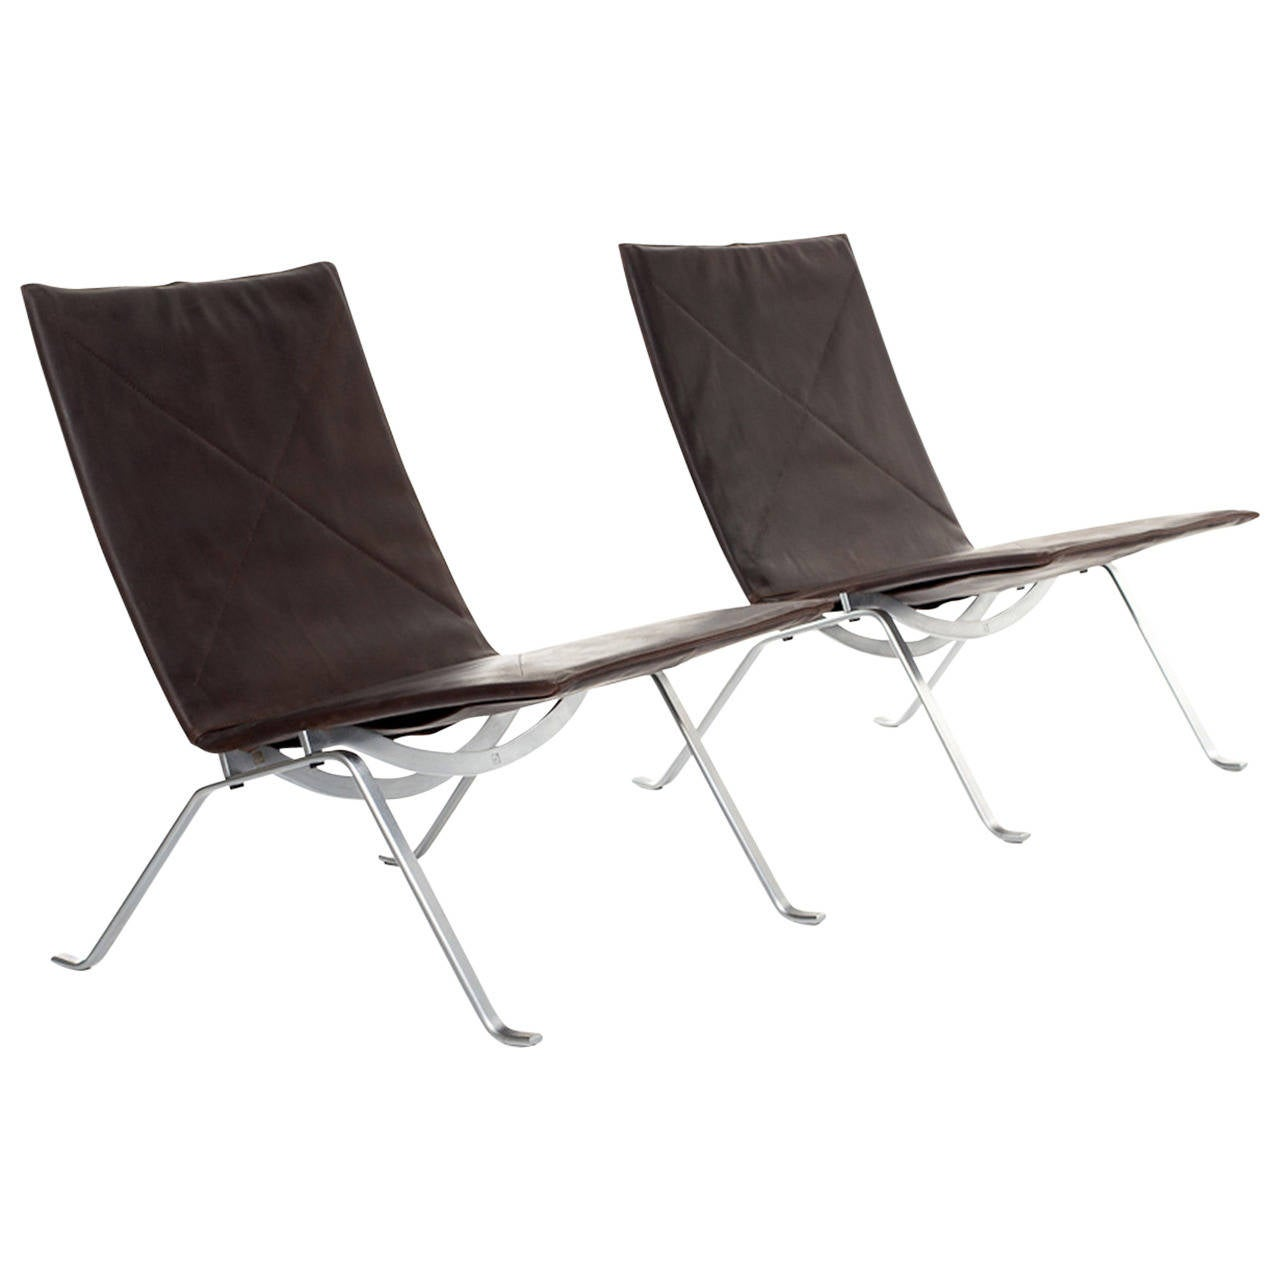 Pk22 Chair Poul Kjaerholm Pk22 Chairs For E Kold Christenesen At 1stdibs